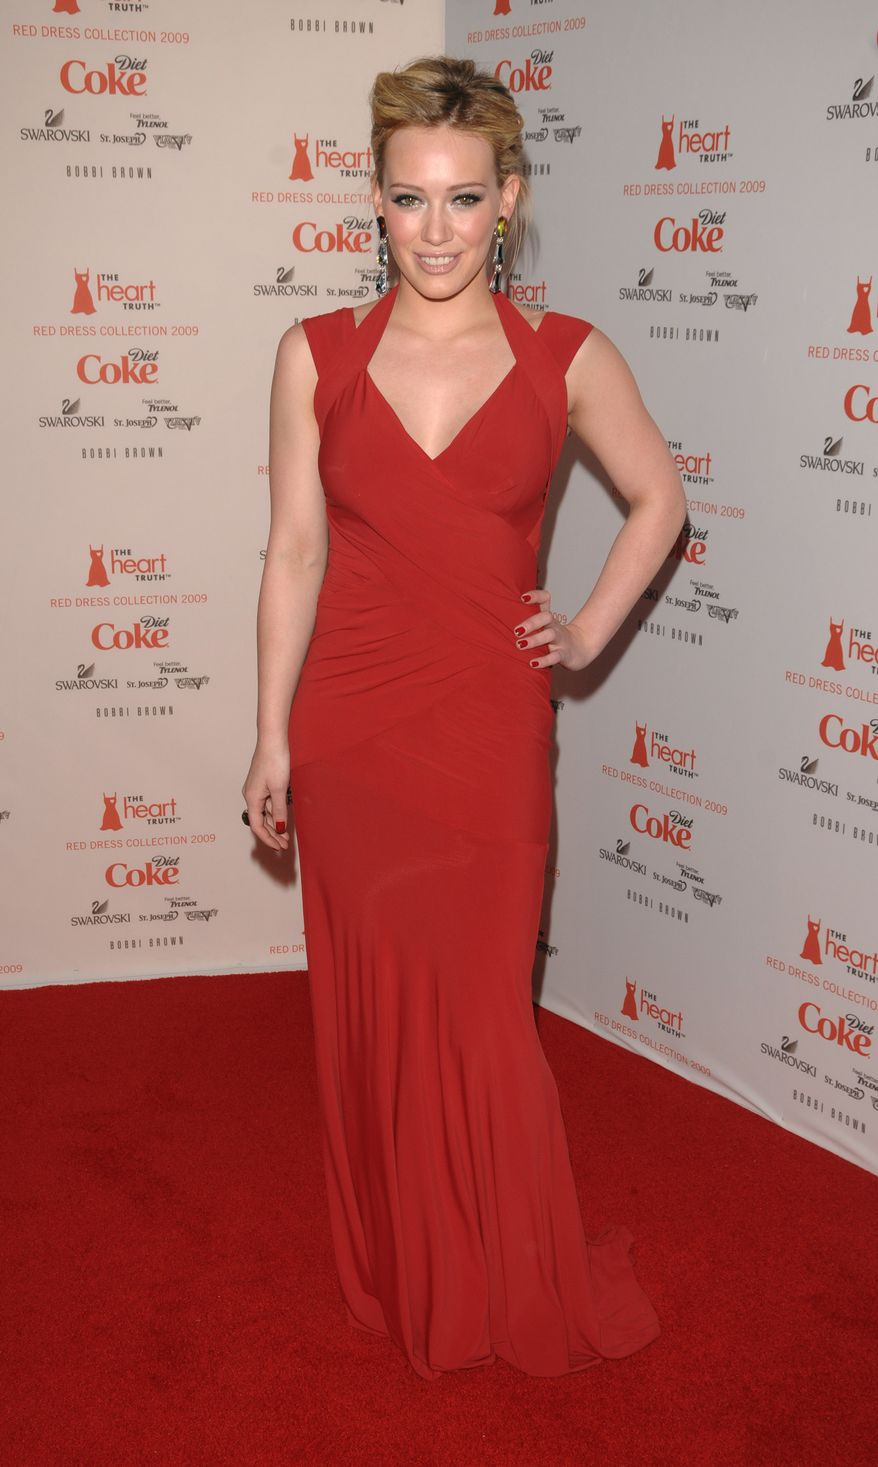 Actress Hilary Duff arrives to the Heart Truth's Red Dress collection during Fashion Week in New York on Friday, Feb. 13, 2009.  (AP Photo/Peter Kramer) ** FILE **